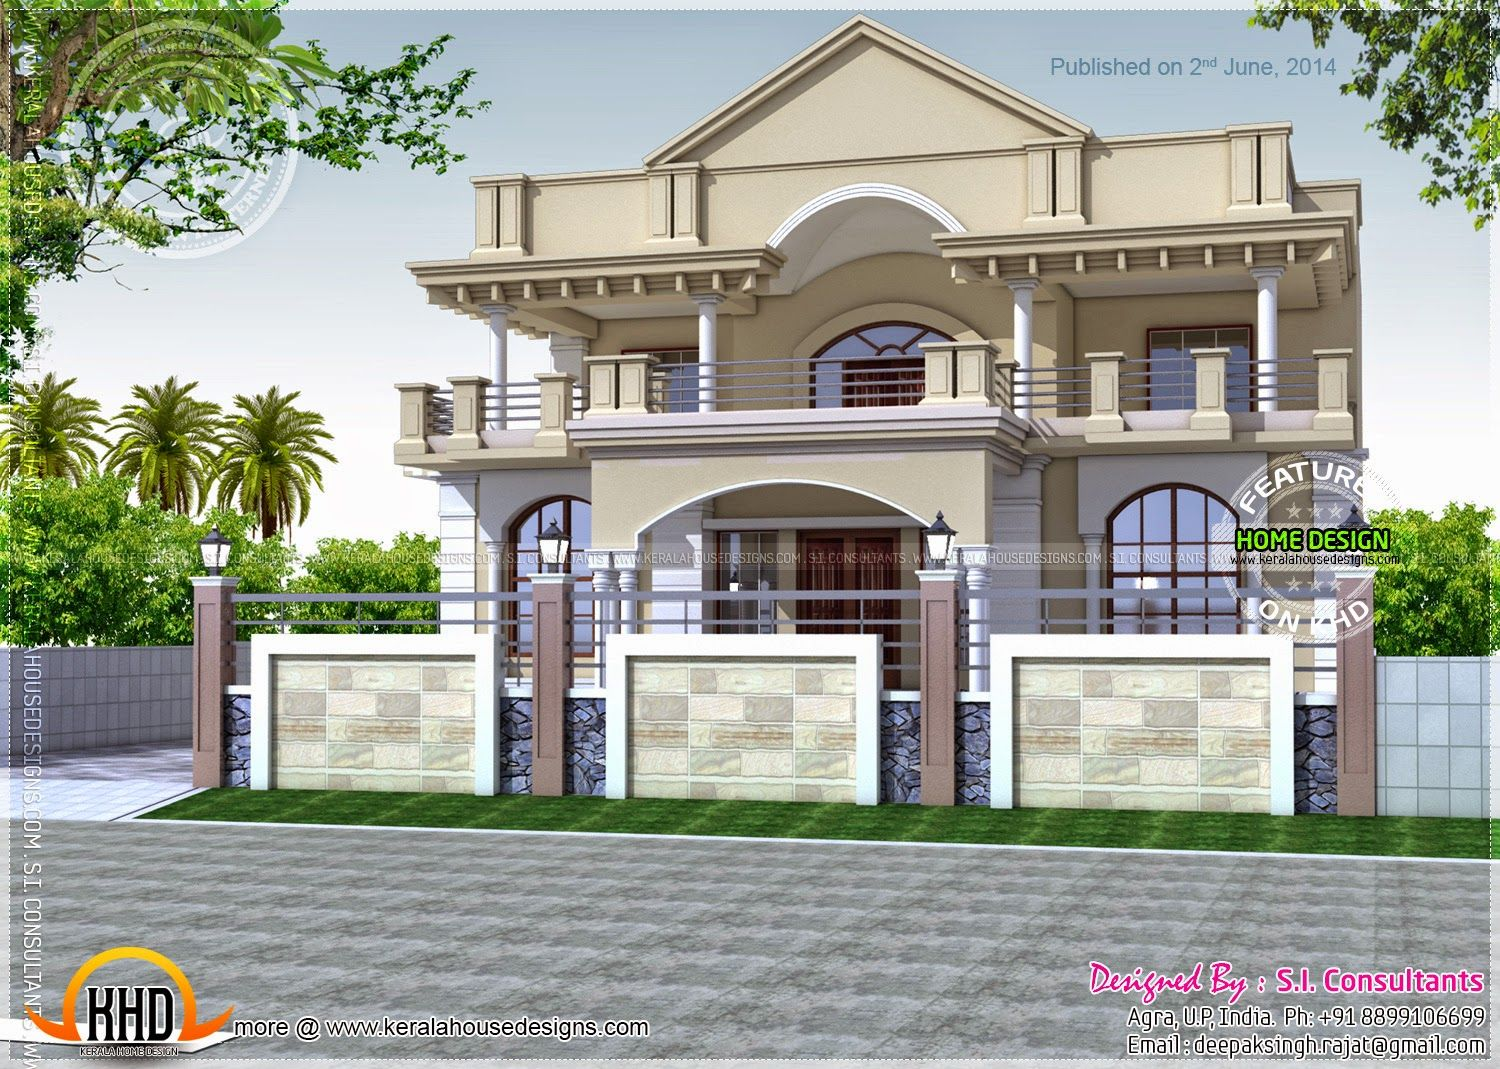 Exceptional Front Design Of House Construction In India Part - 8: North Indian Exterior House ~ Indian House Plans